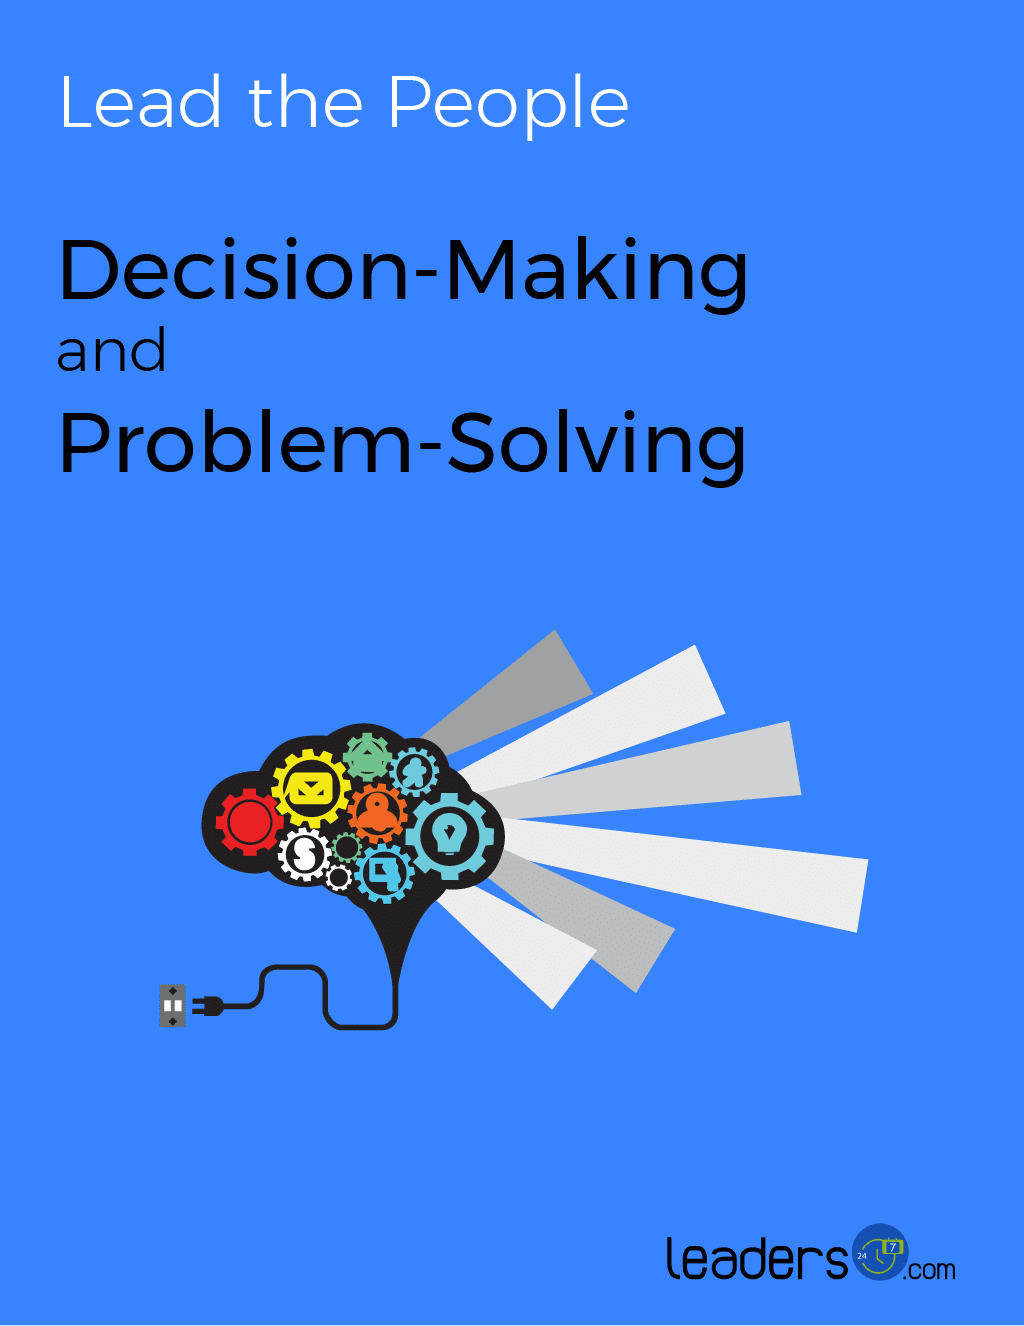 Decision-Making and Problem-Solving